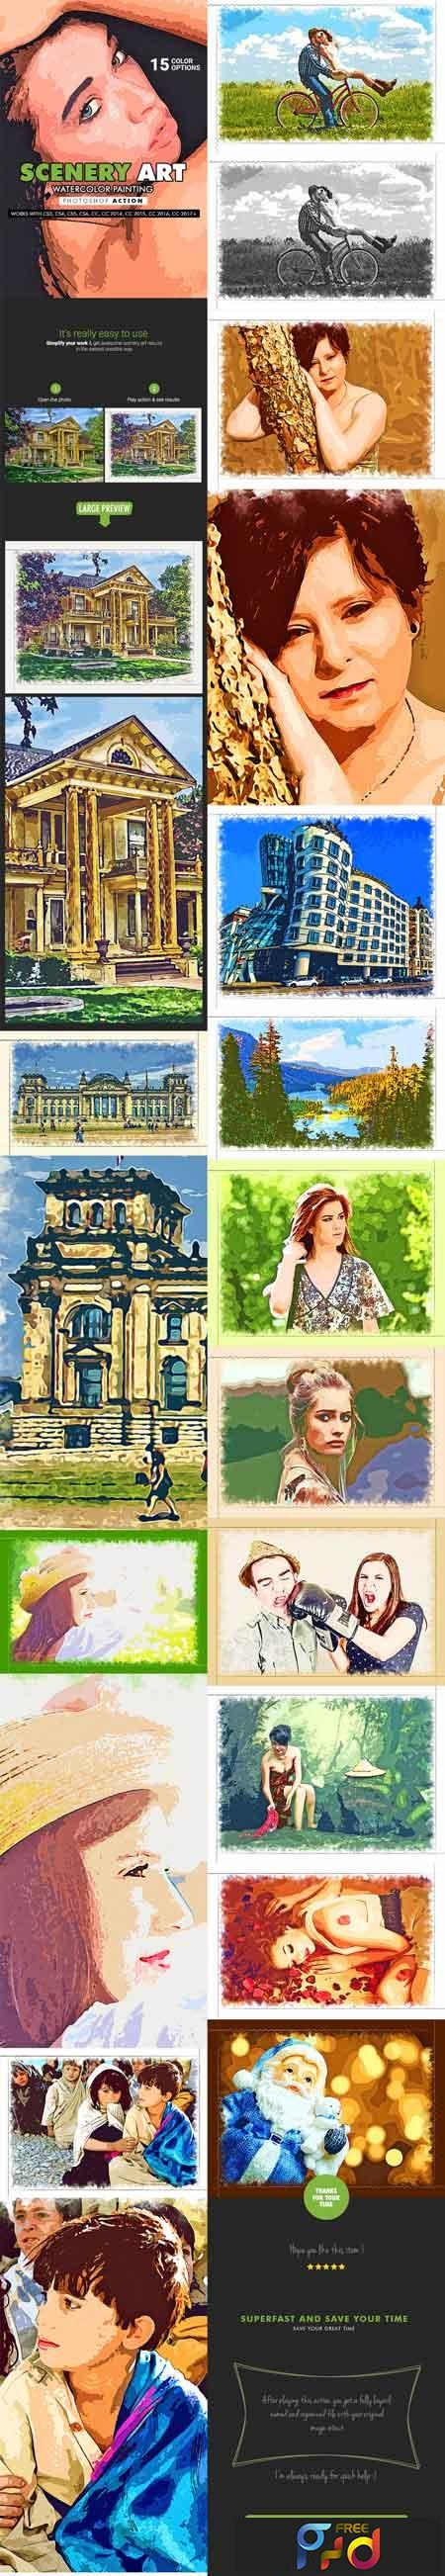 Scenery Art - Watercolor Painting Photoshop Action 19869916 1